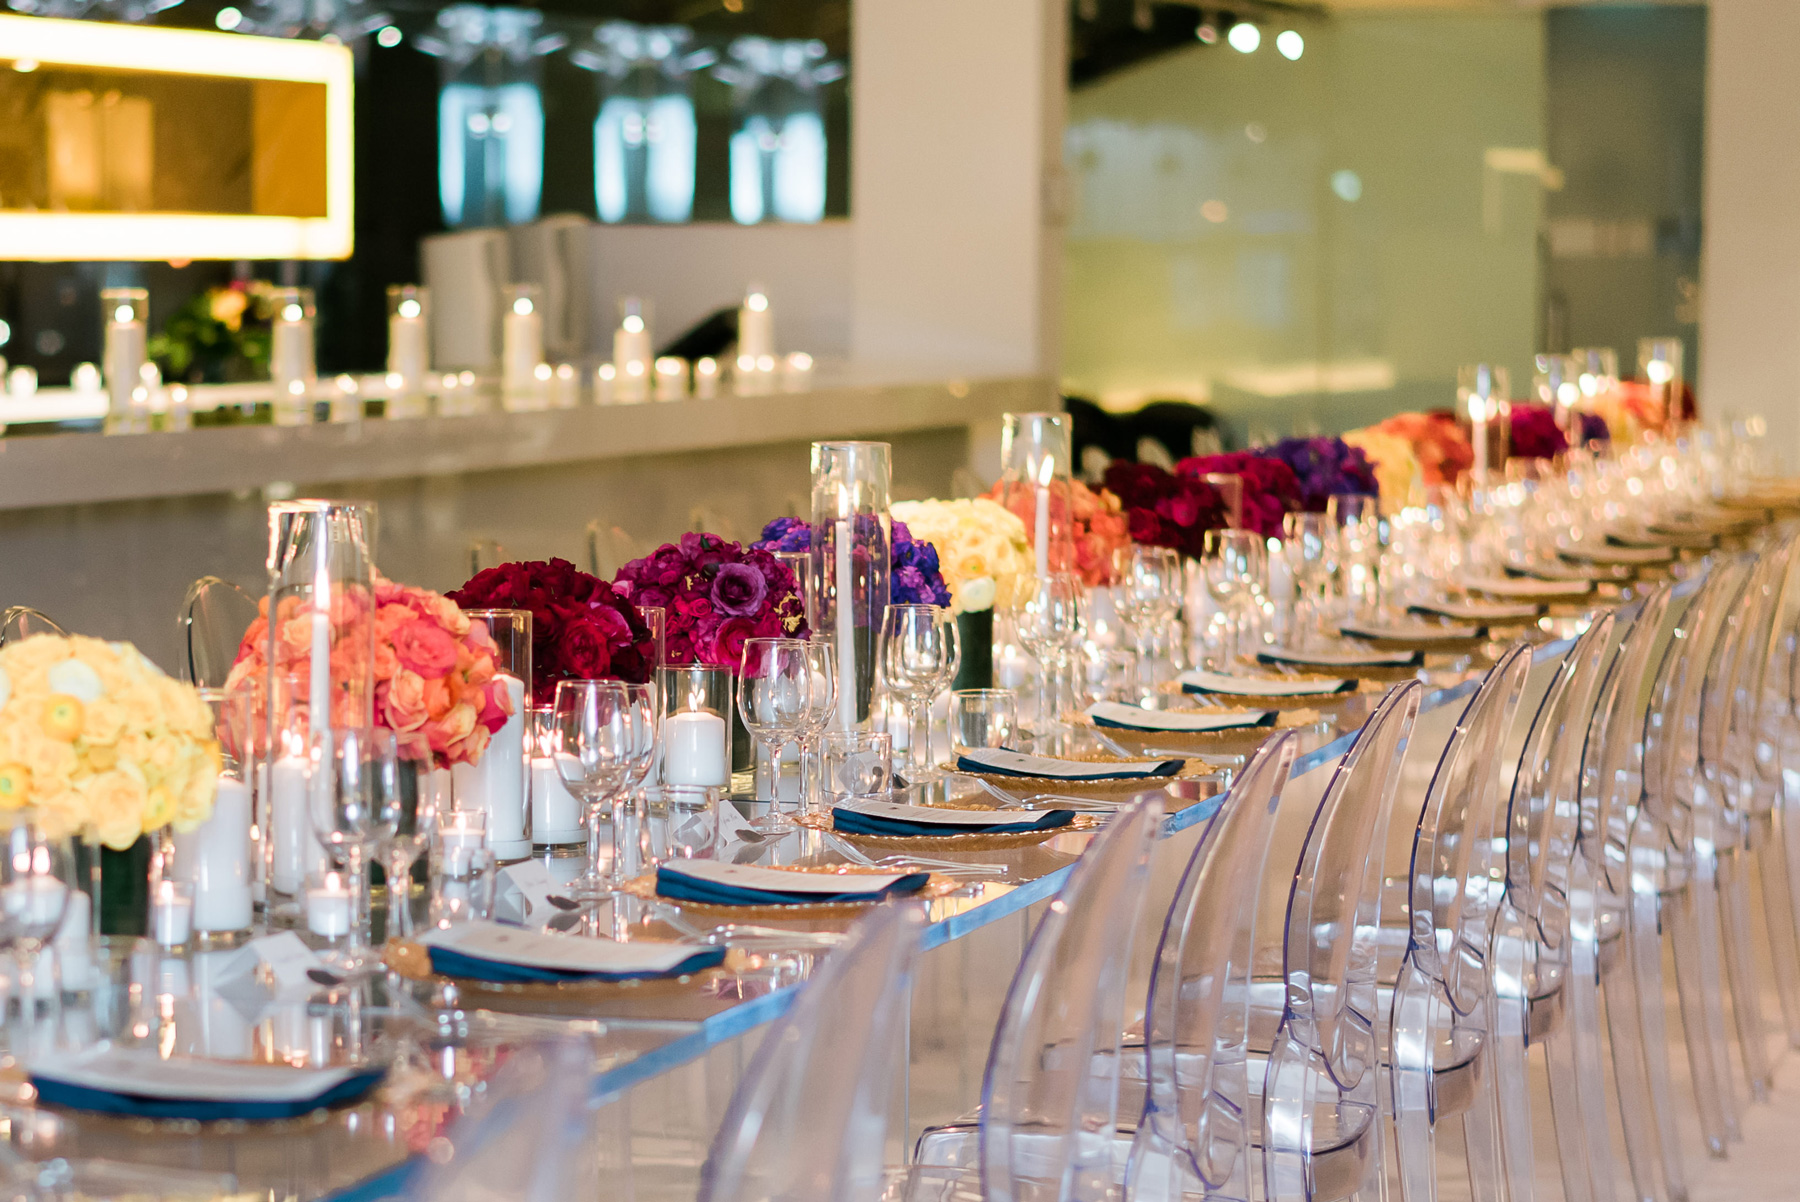 rows of candles and colorful monochromatic centerpieces